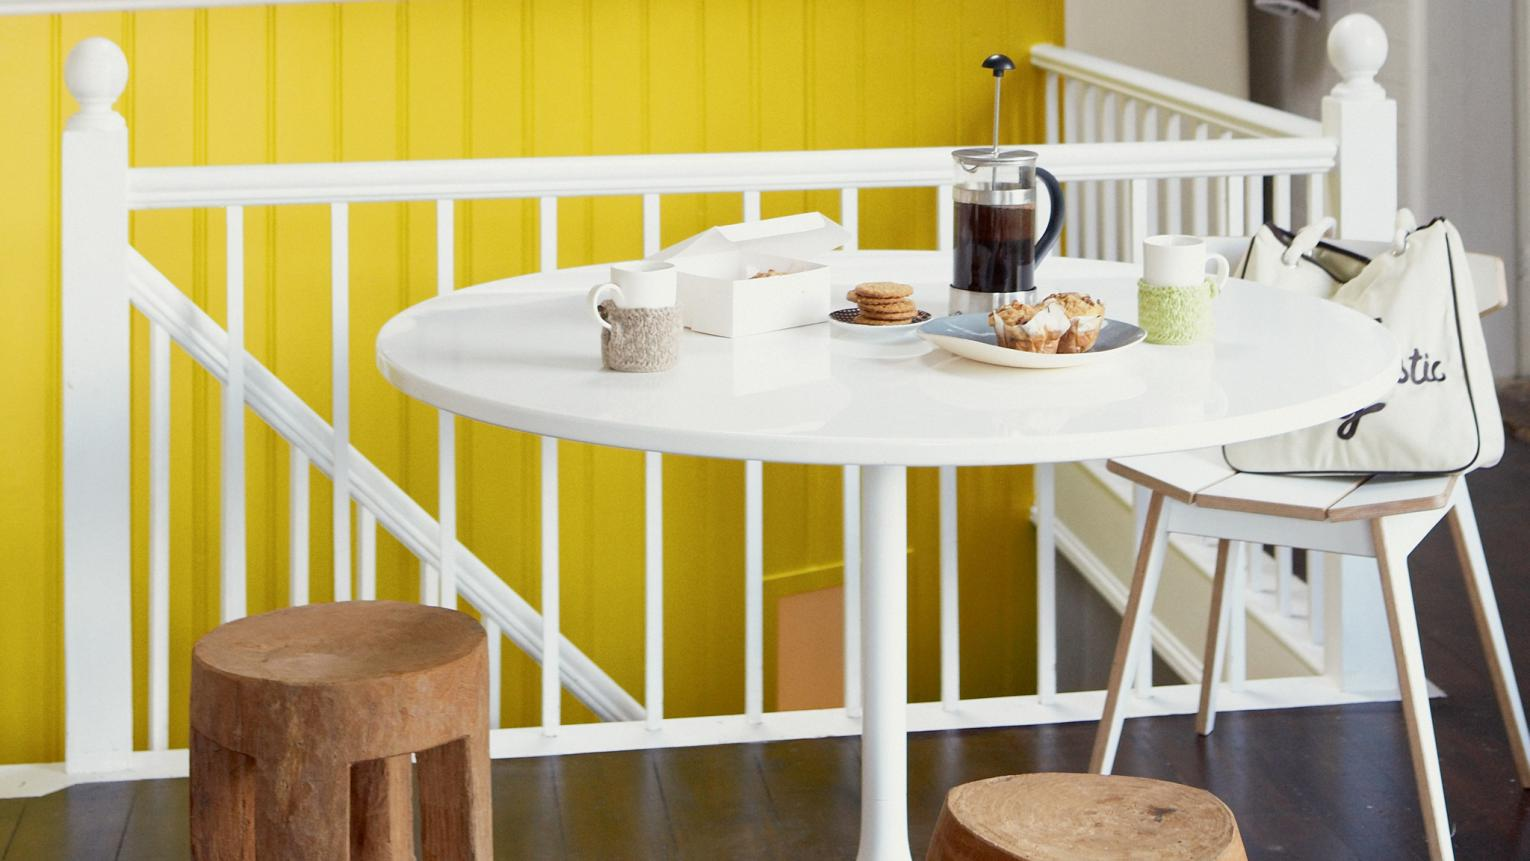 Add sunshine to your kitchen with yellow+ colours and products